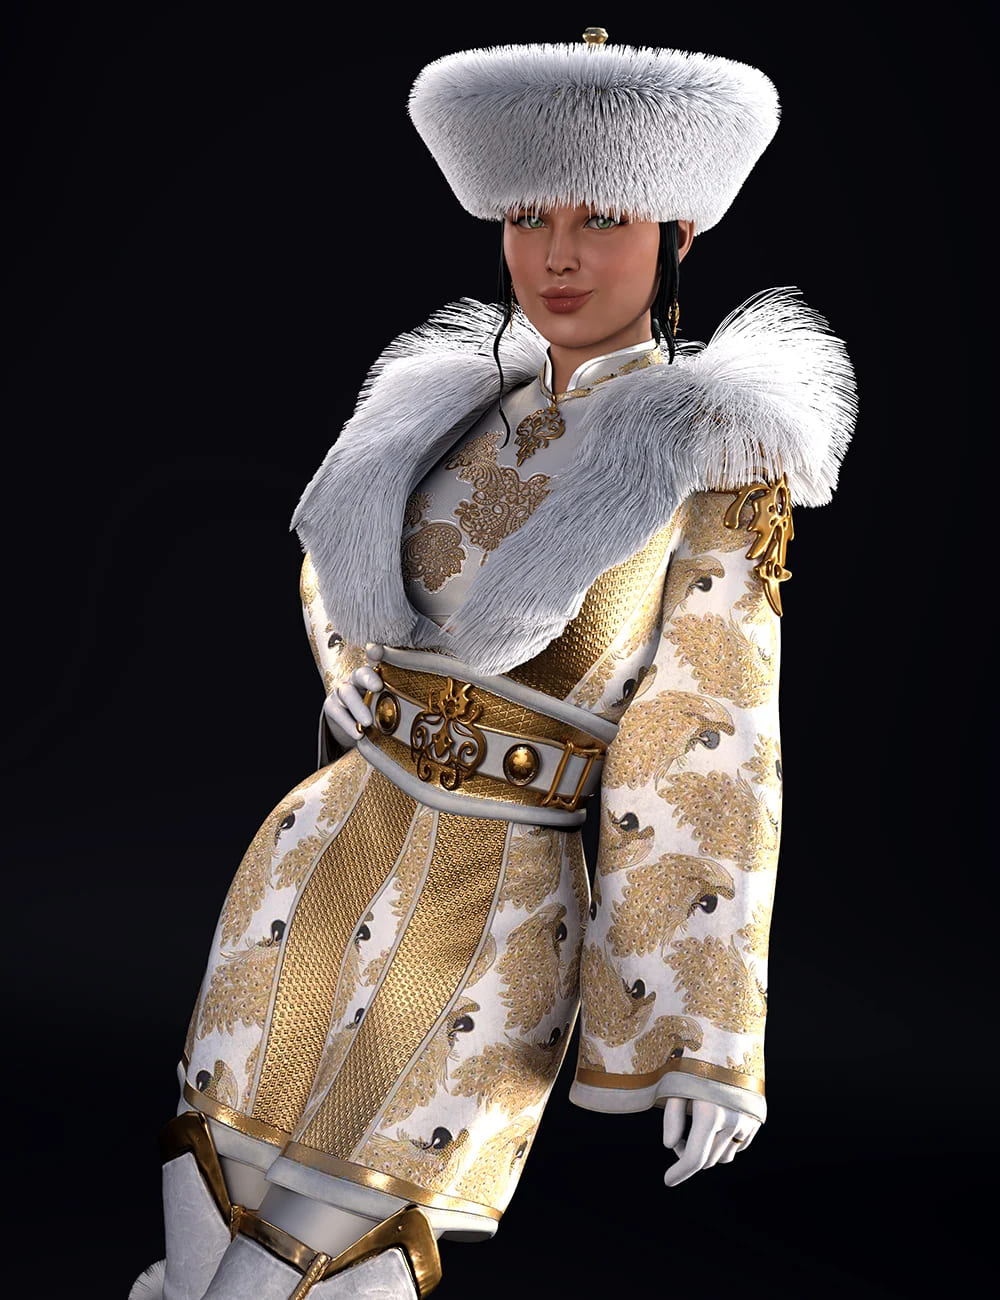 dForce Sujin Imperial Fantasy Outfit for Genesis 8 Females_DAZ3D下载站